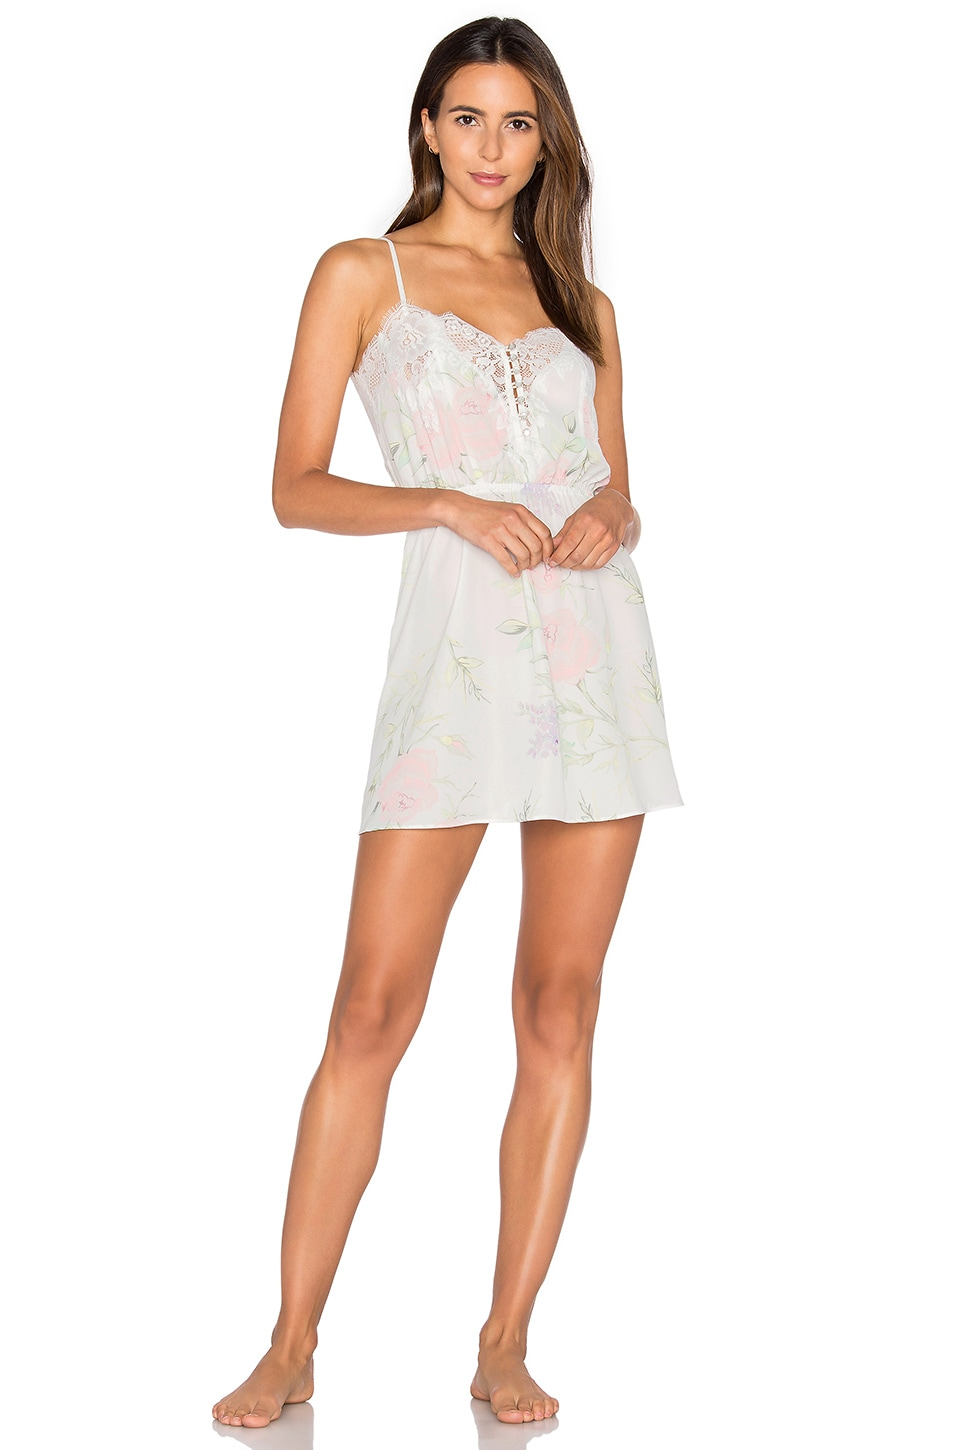 homebodii Sophia Lace Nightie in Floral